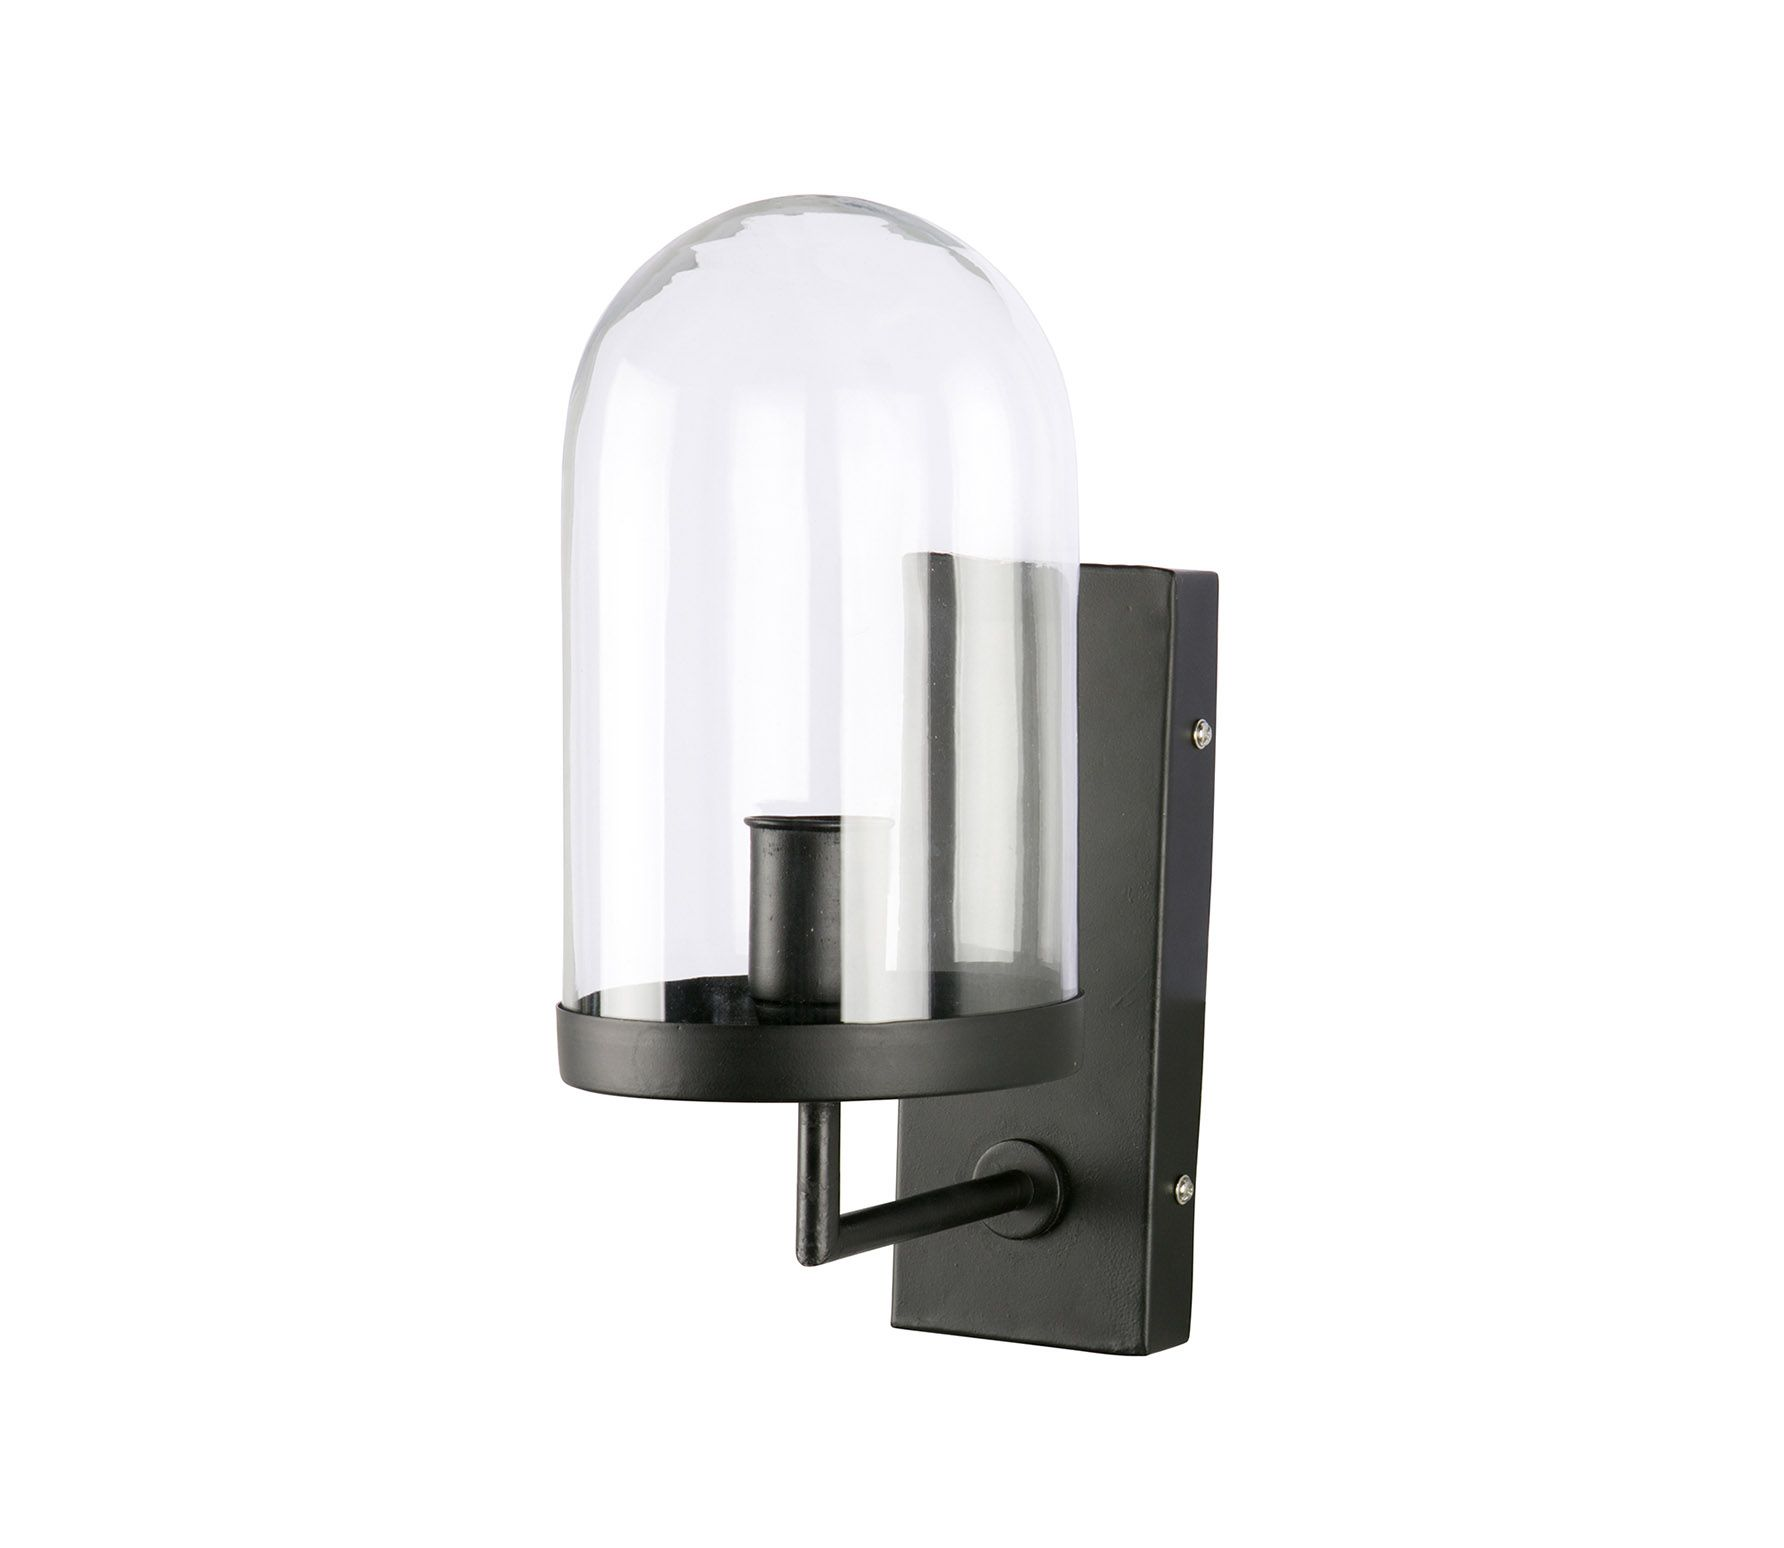 BePureHome Cover up wandlamp - Zwart